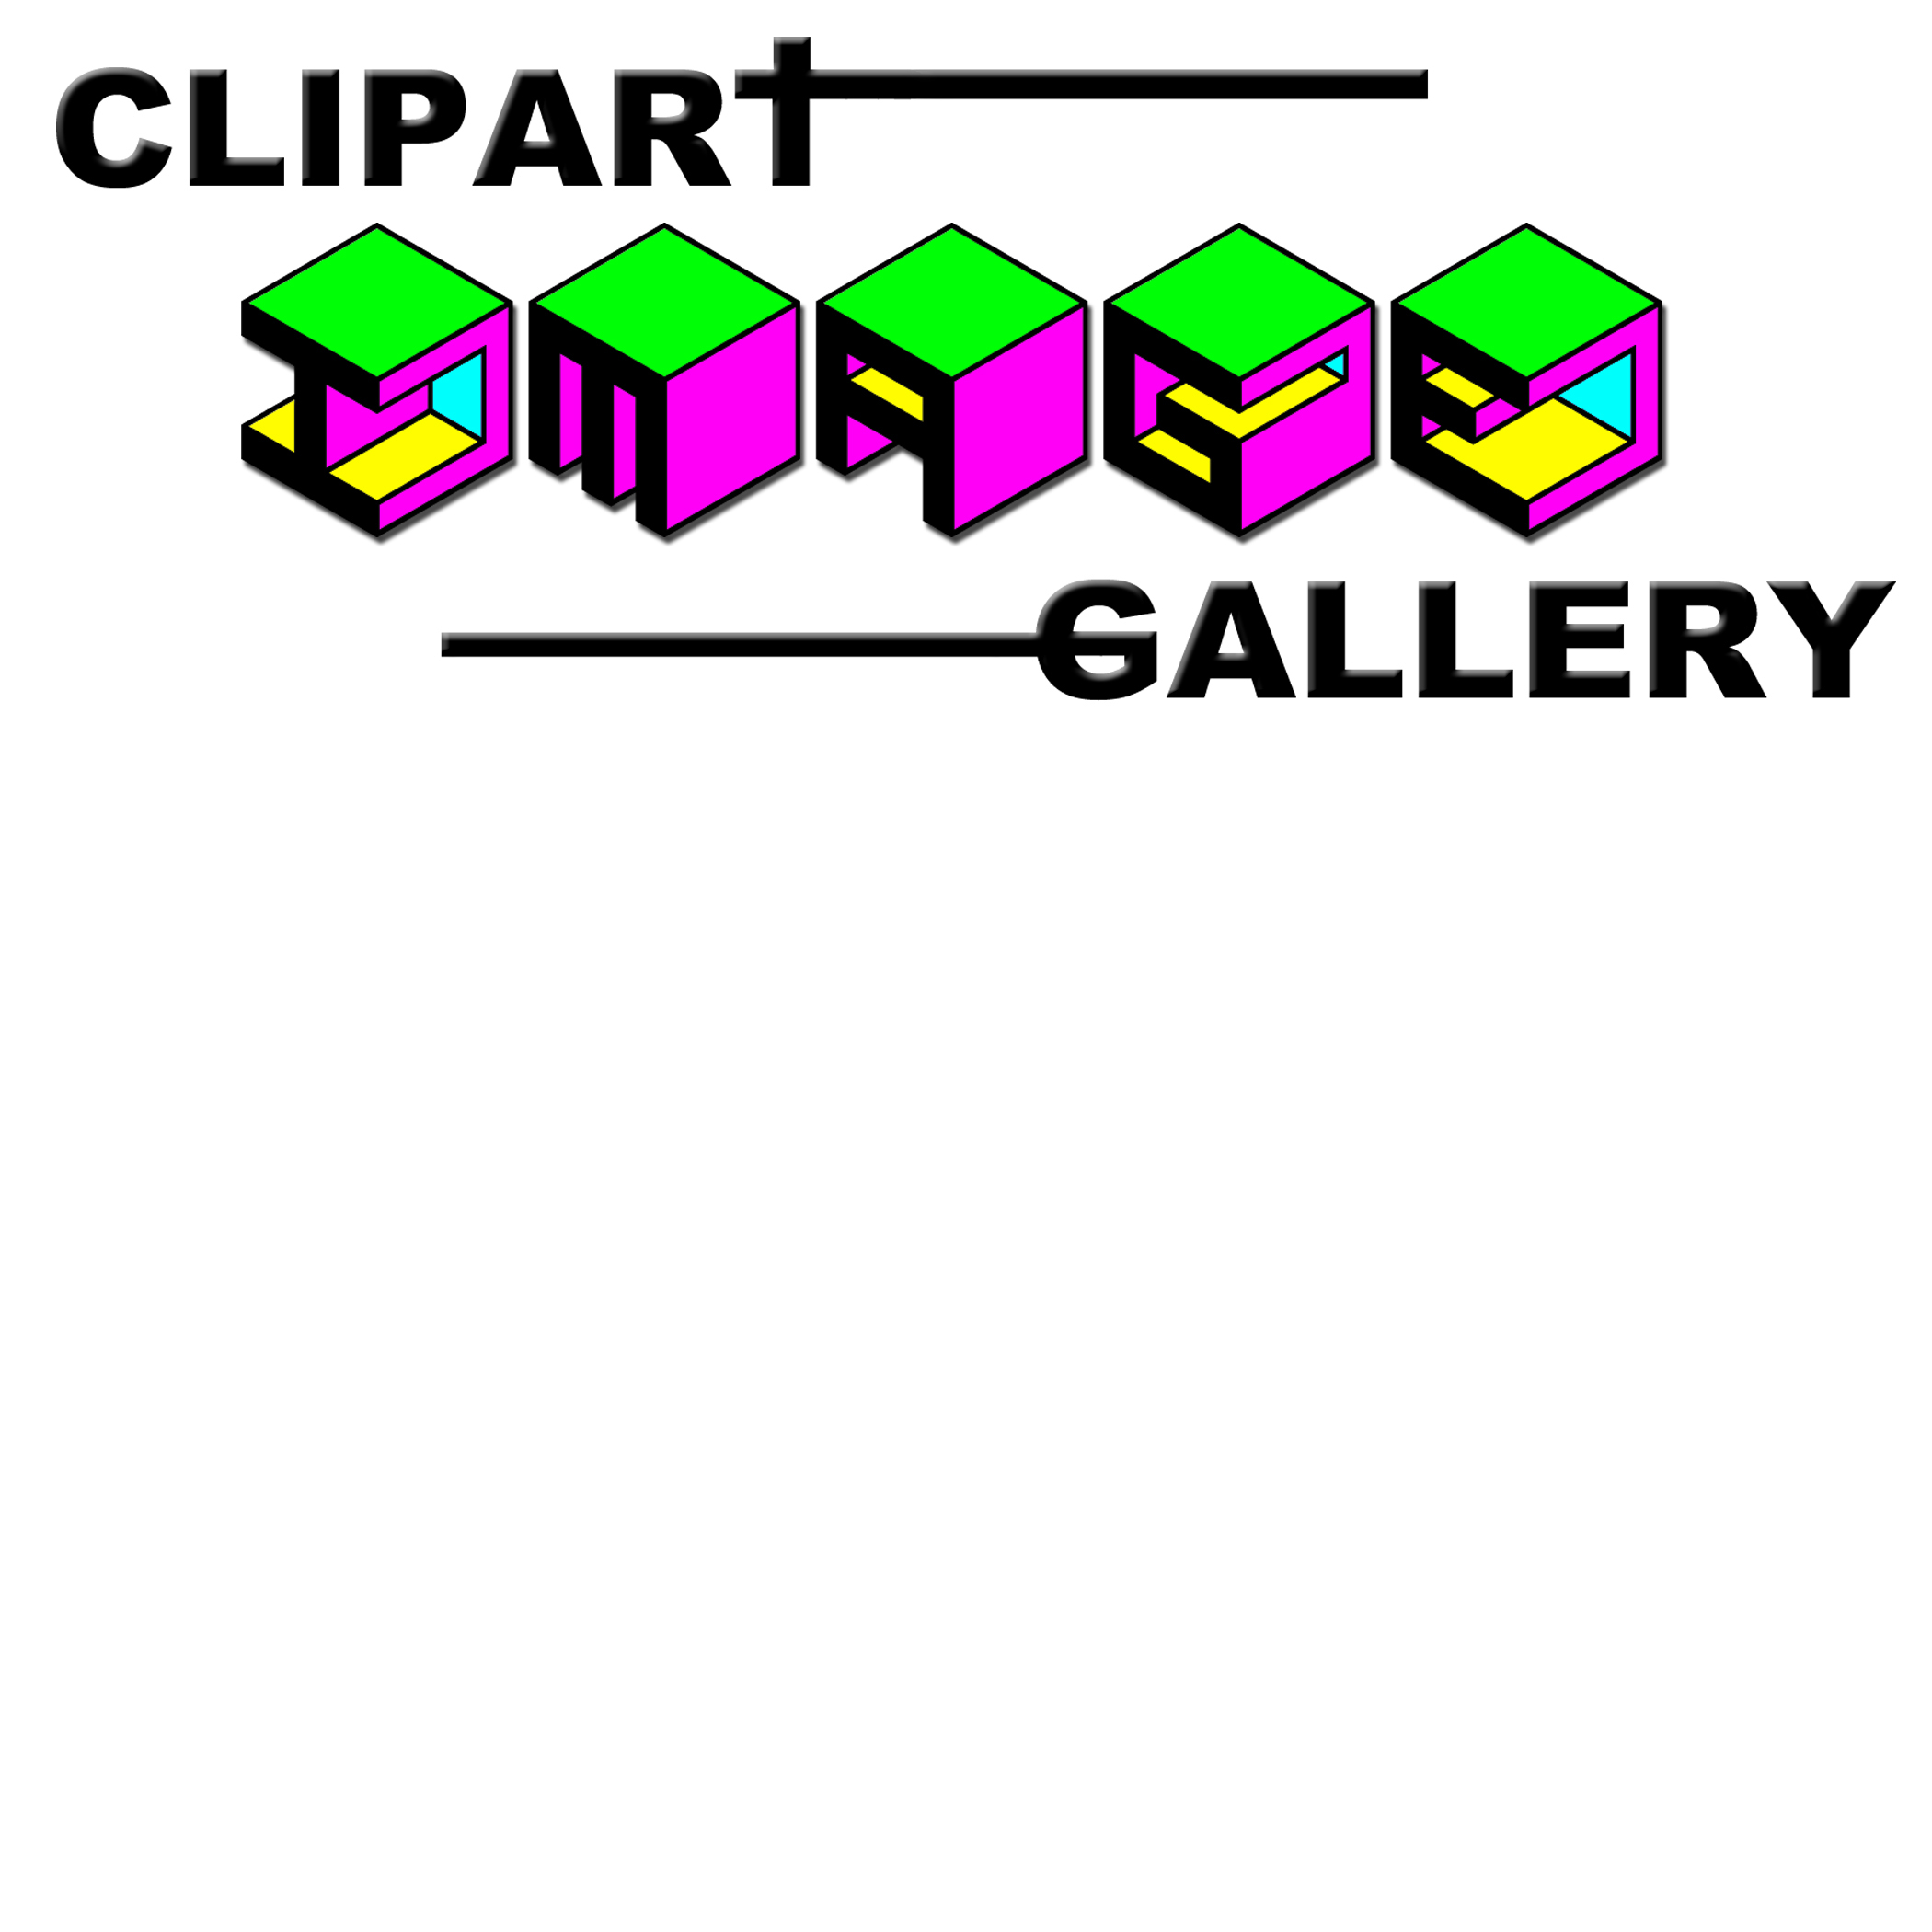 clipart art gallery - photo #13